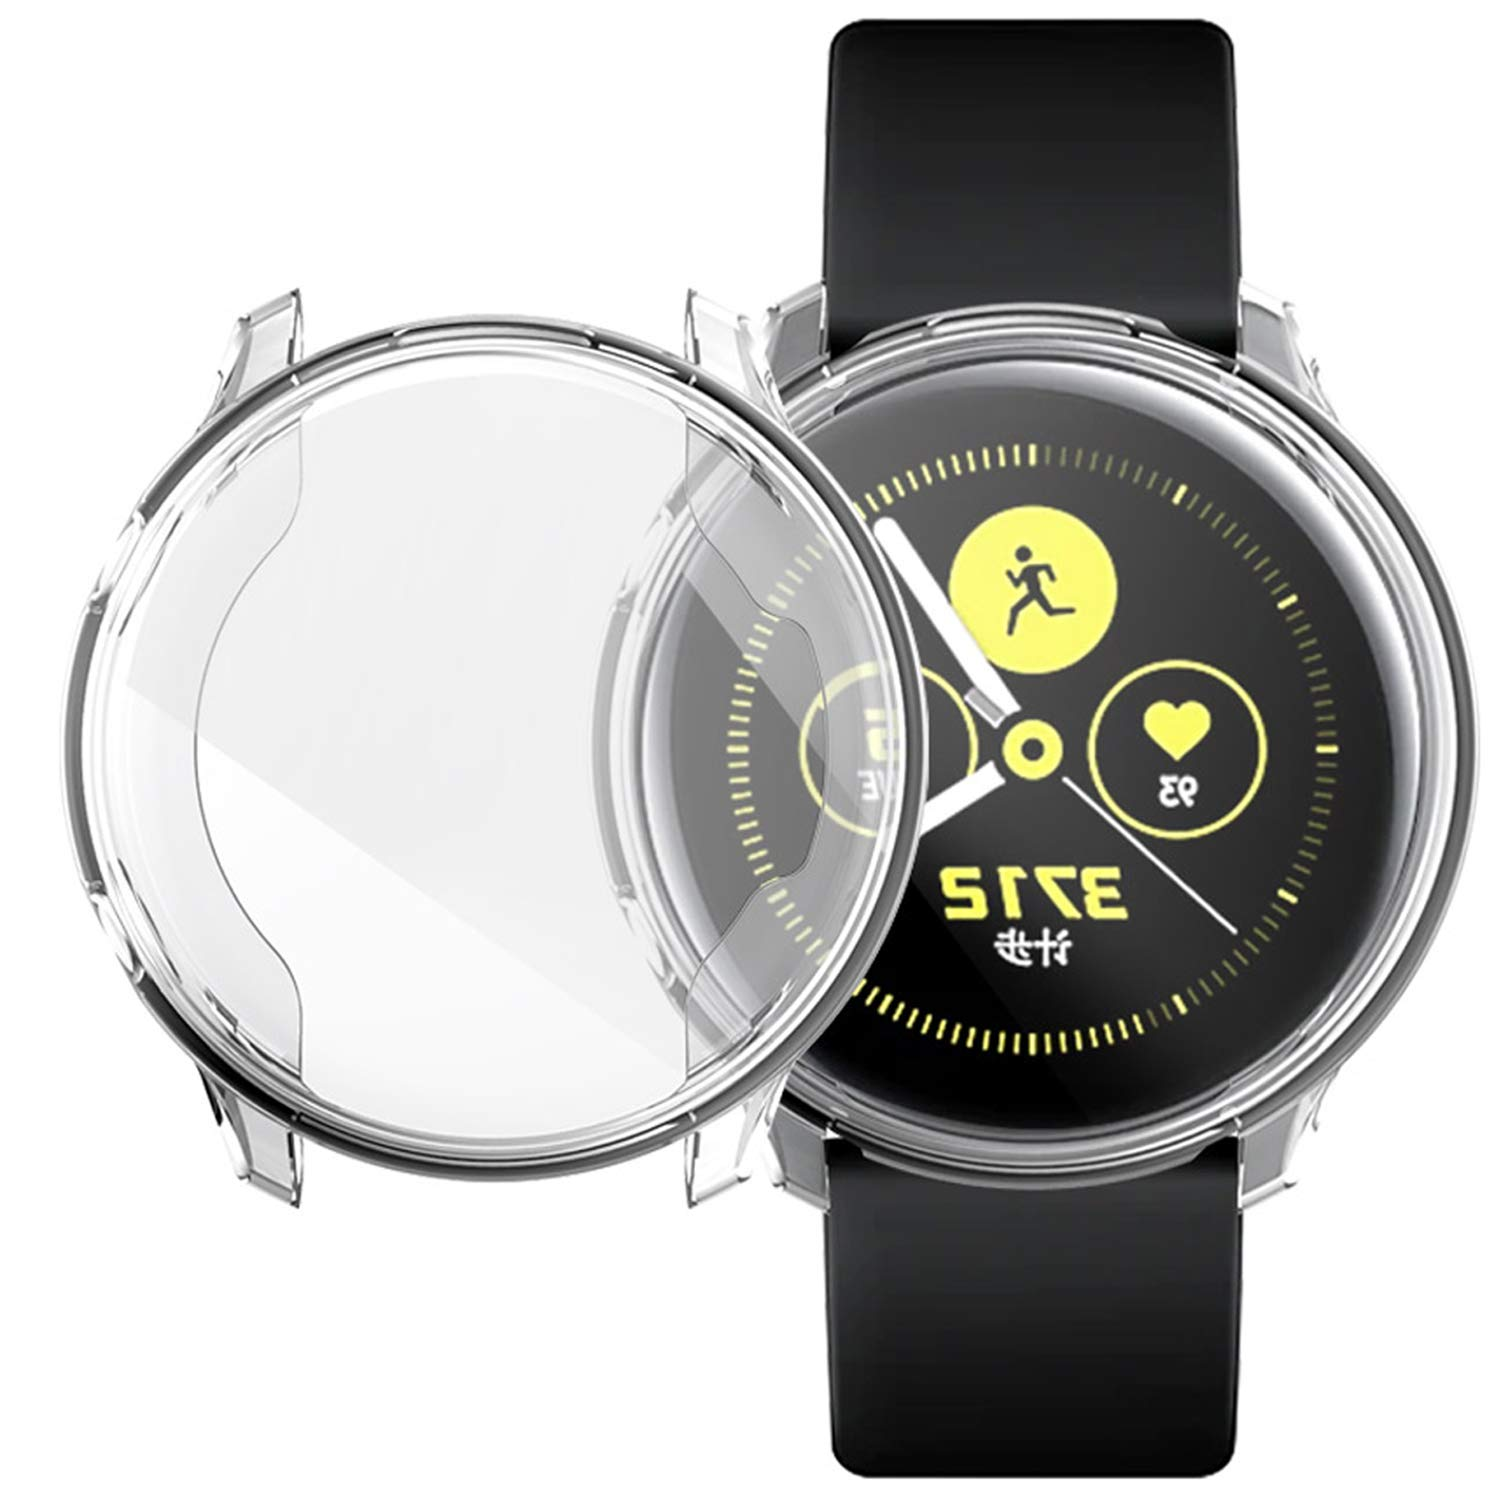 Funda transparente para reloj Samsung Galaxy Watch Active